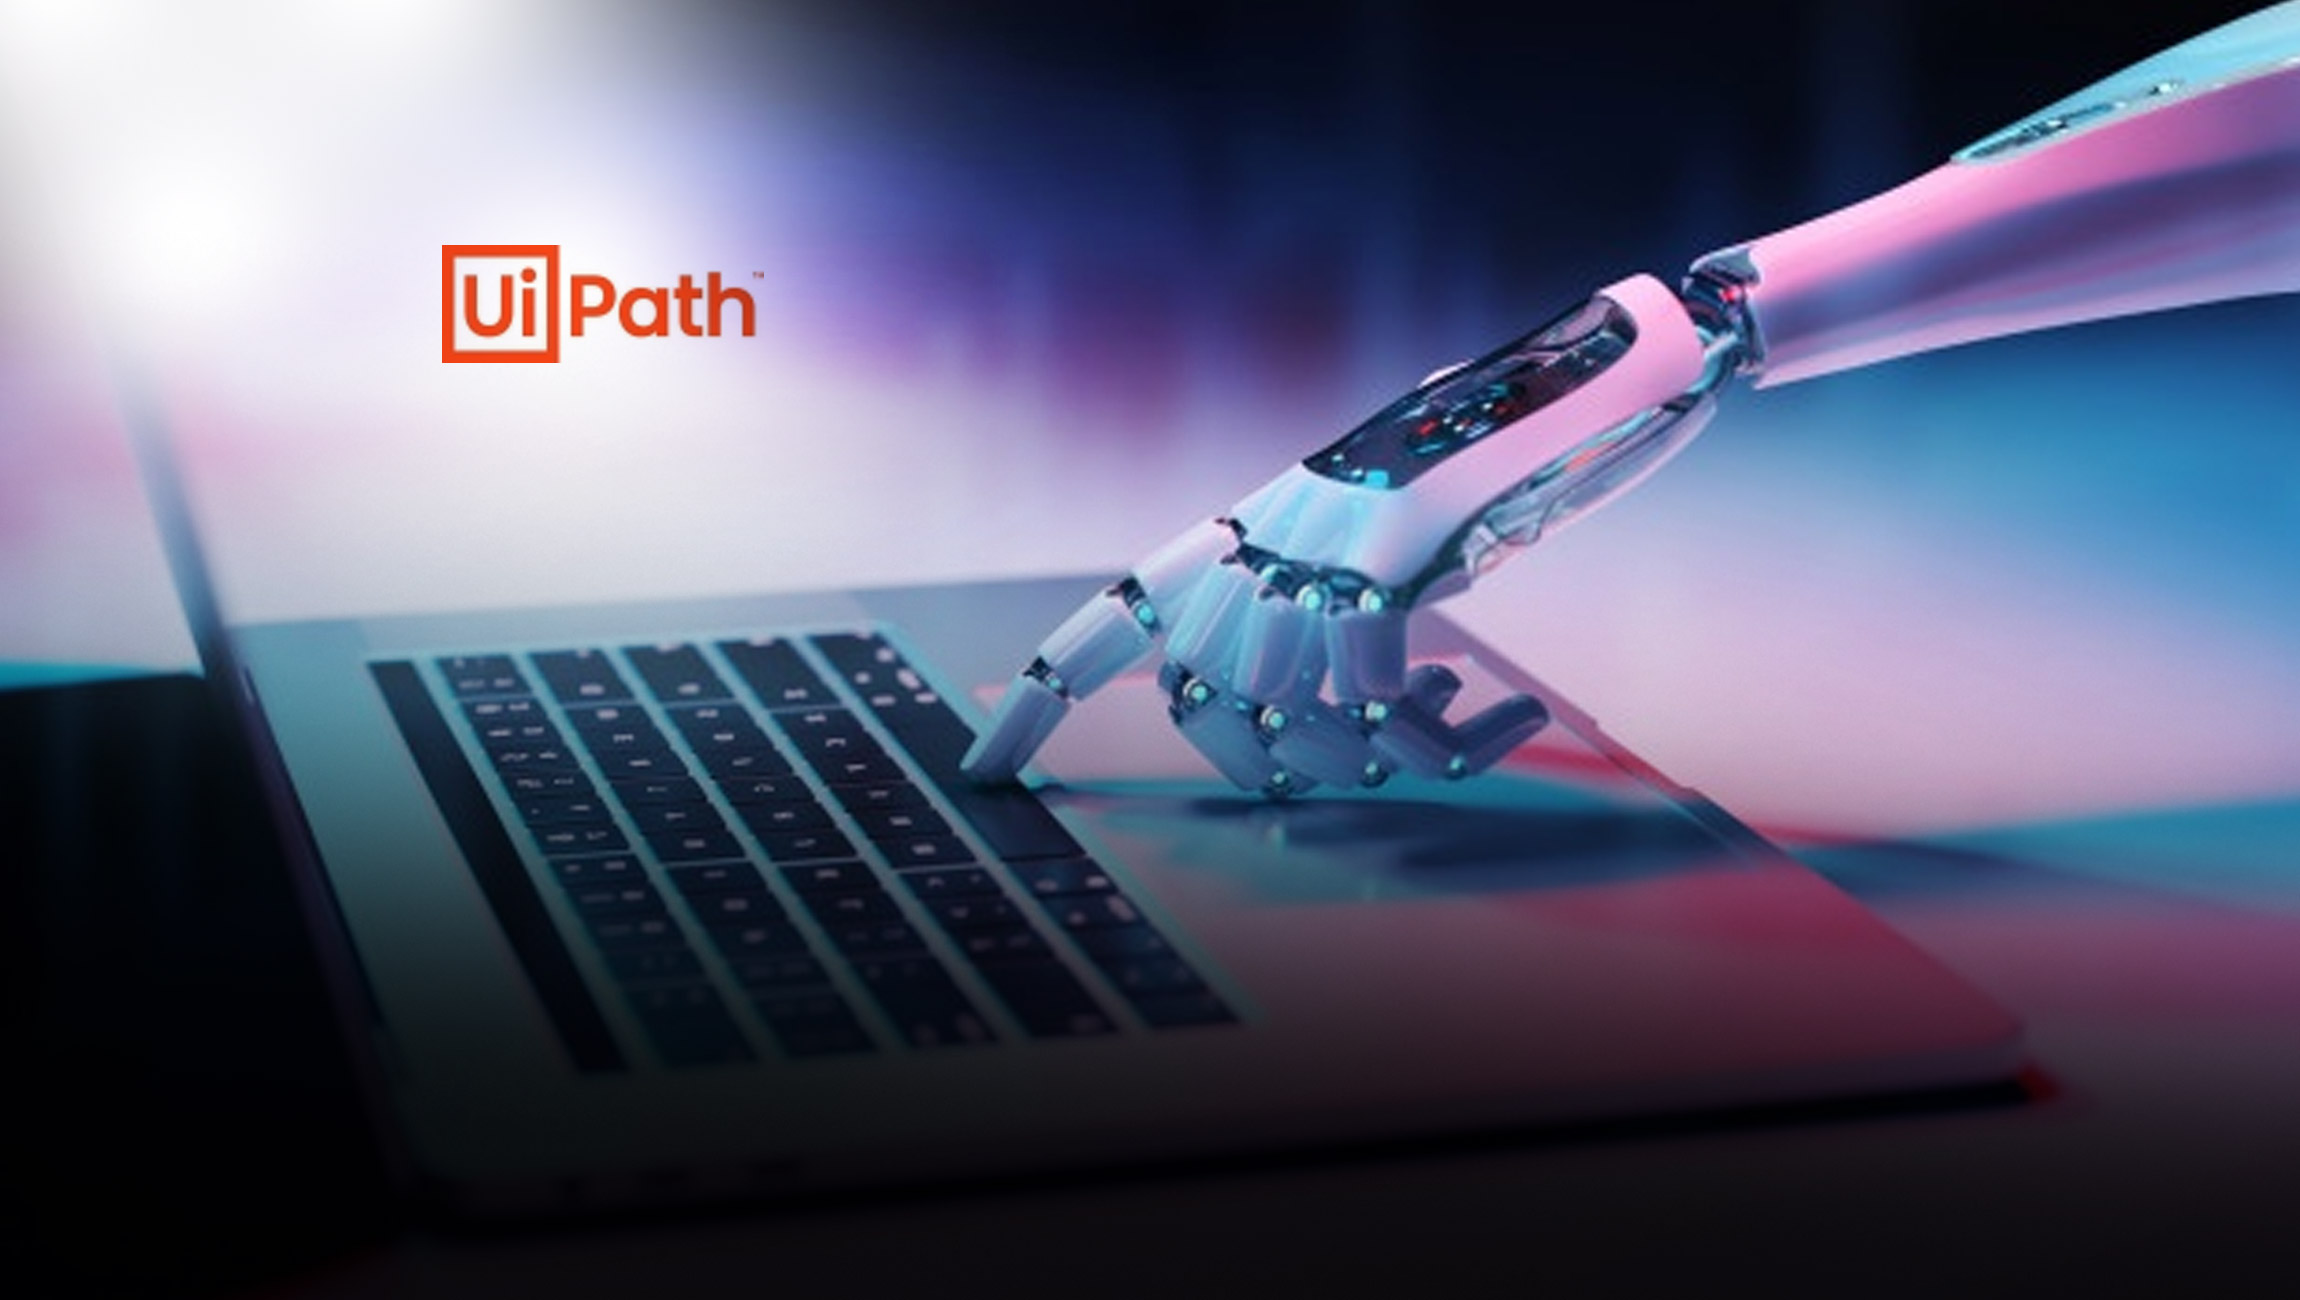 UiPath Named a Leader in the 2020 Gartner Magic Quadrant for Robotic Process Automation